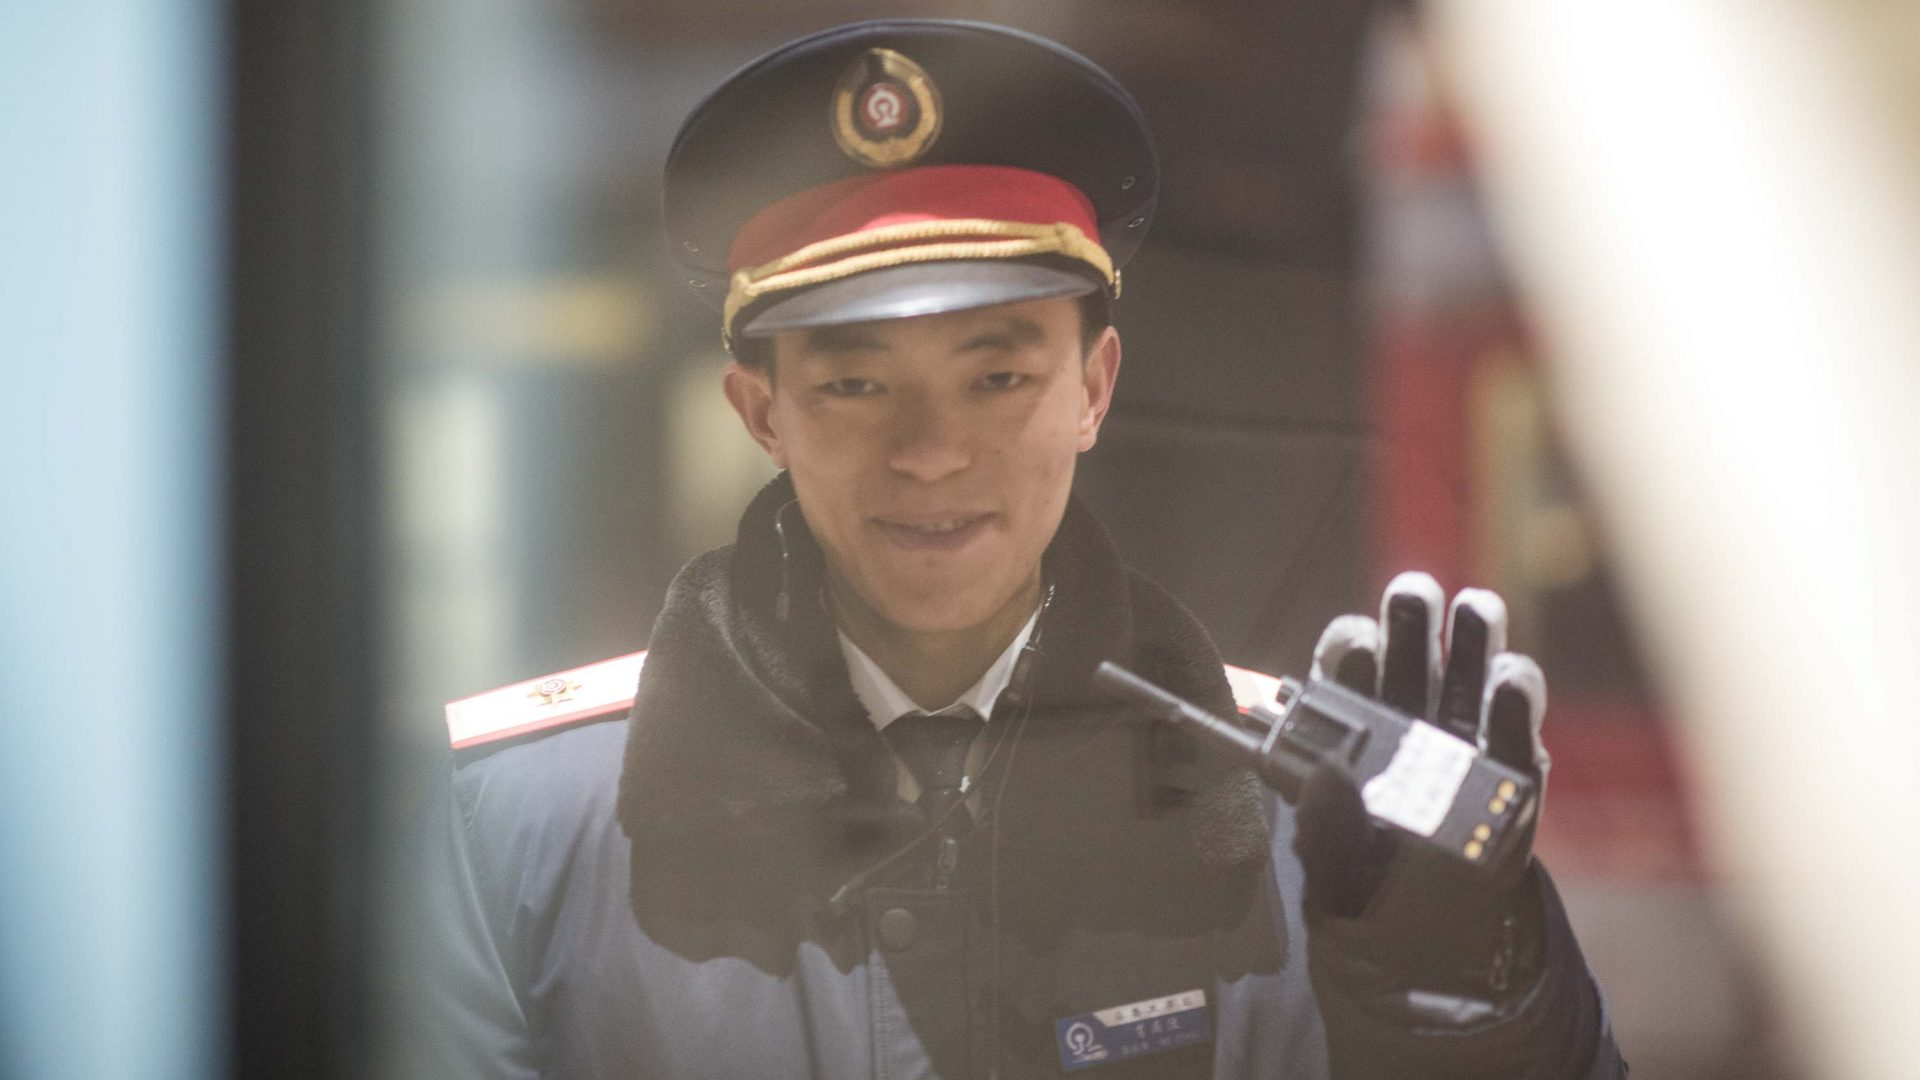 A guard on the platform in Xining, capital of Qinghai province in central China, by the Tibetan Plateau.